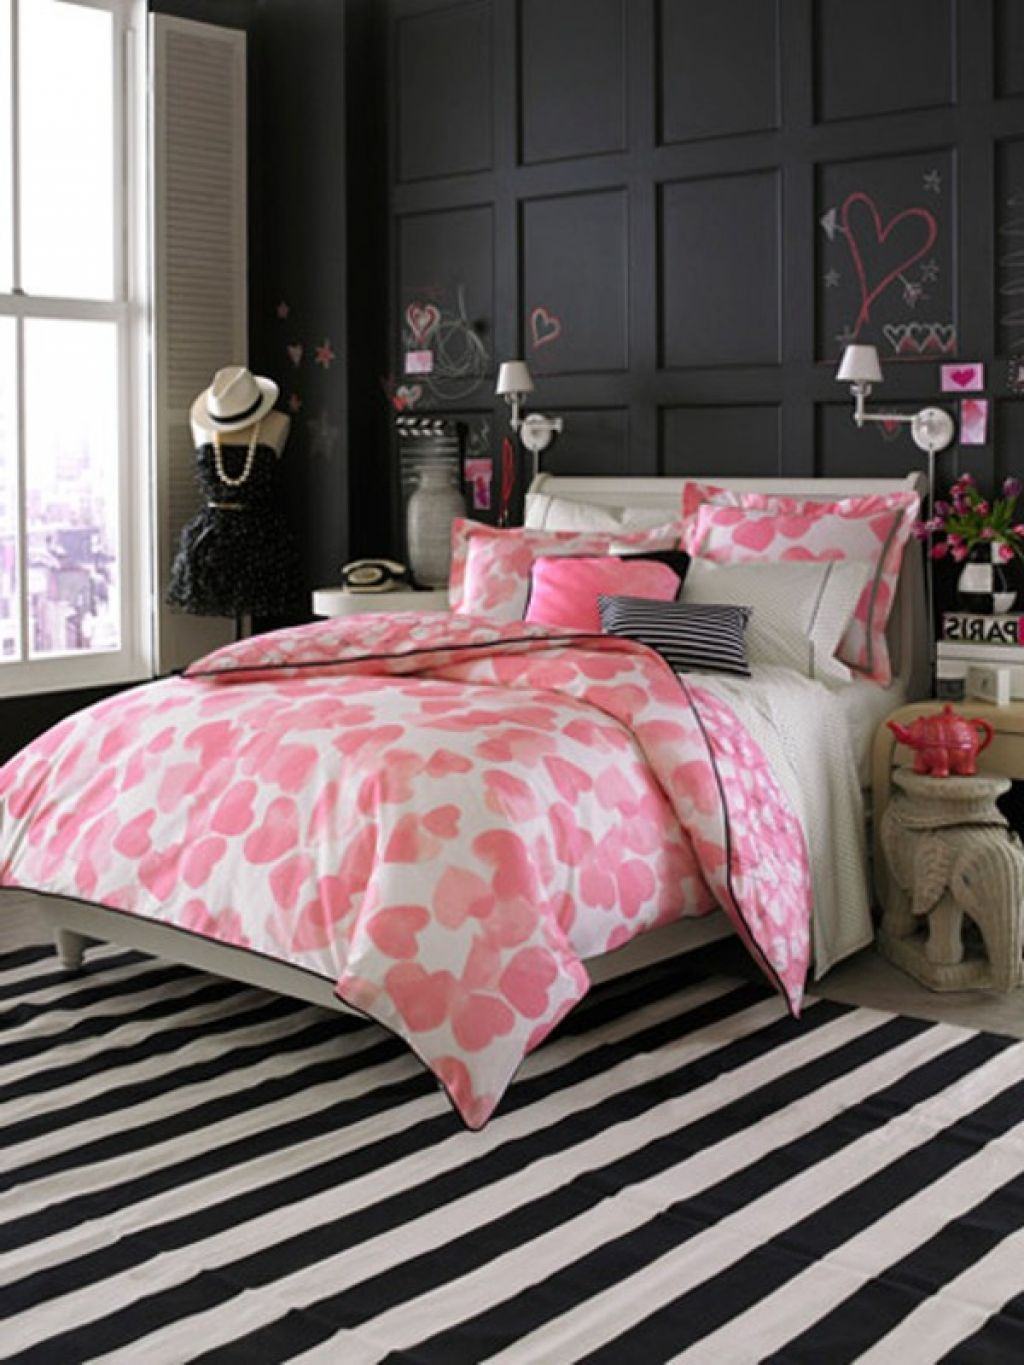 Captivating Small Spaces Teenage Girls Bedroom Design With